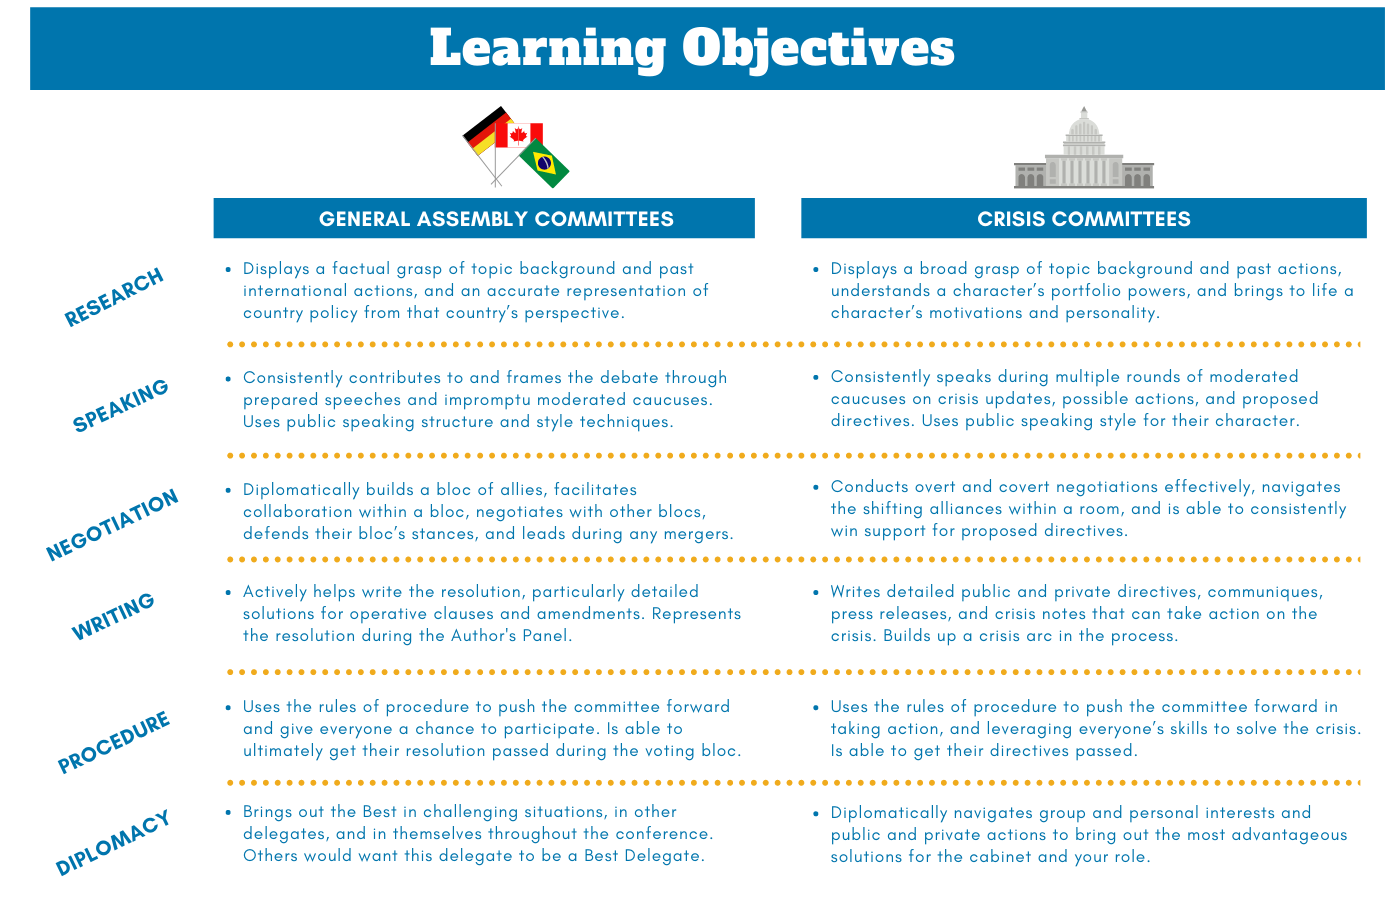 VMUNC Learning Objectives